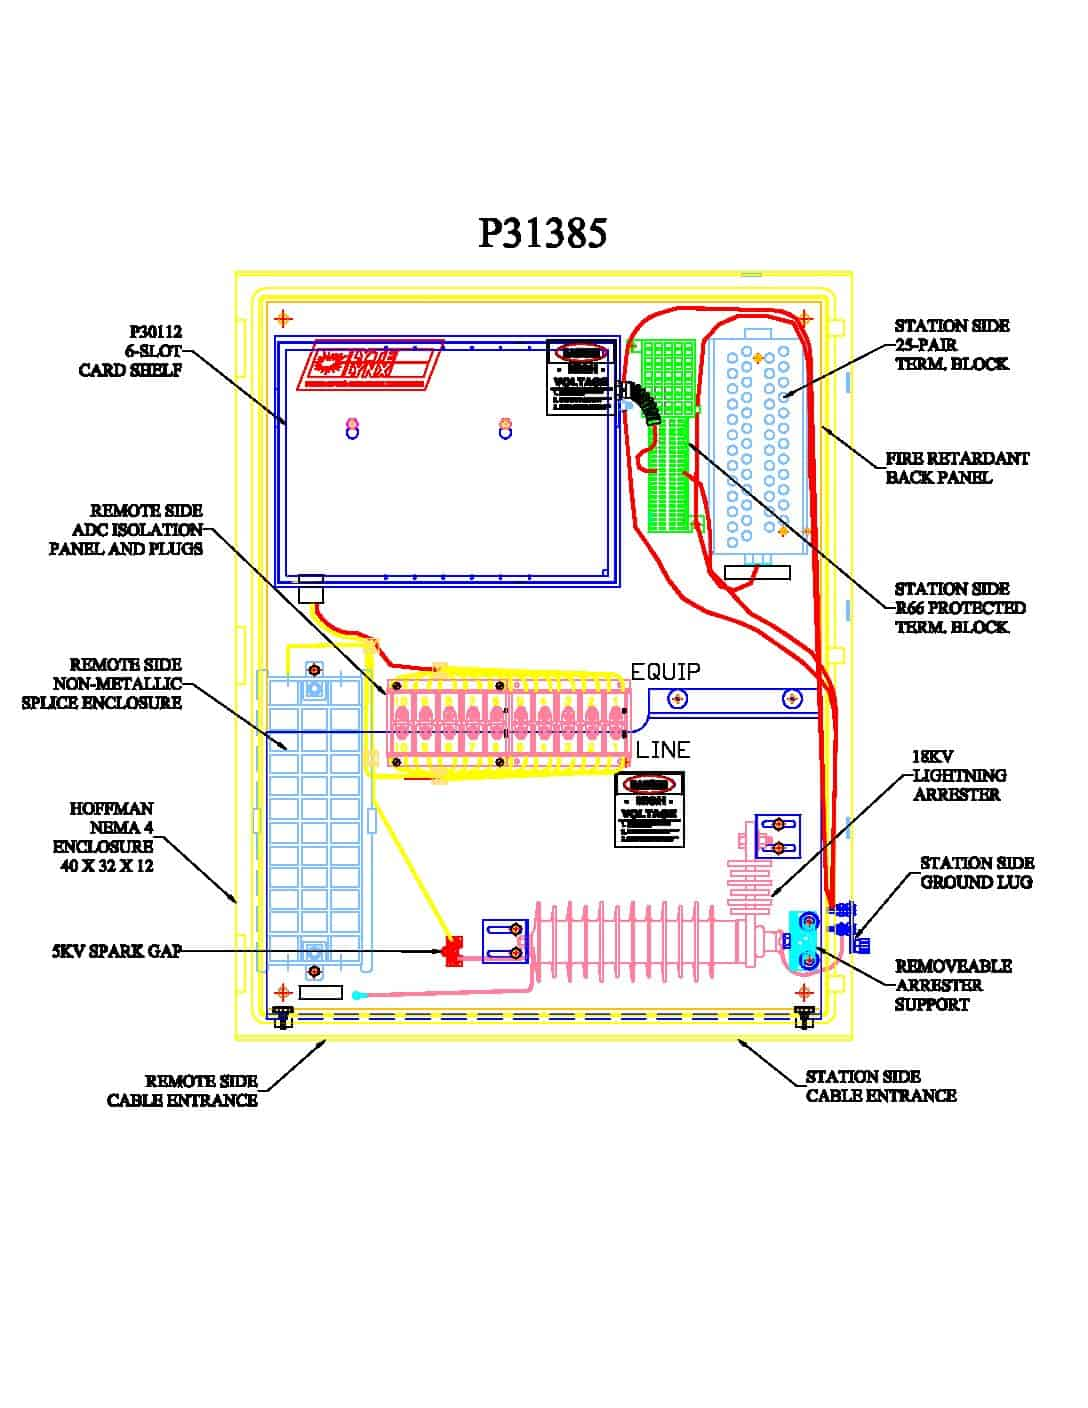 P31385 Turnkey Protection Packages – 6 slot PDF thumbnail